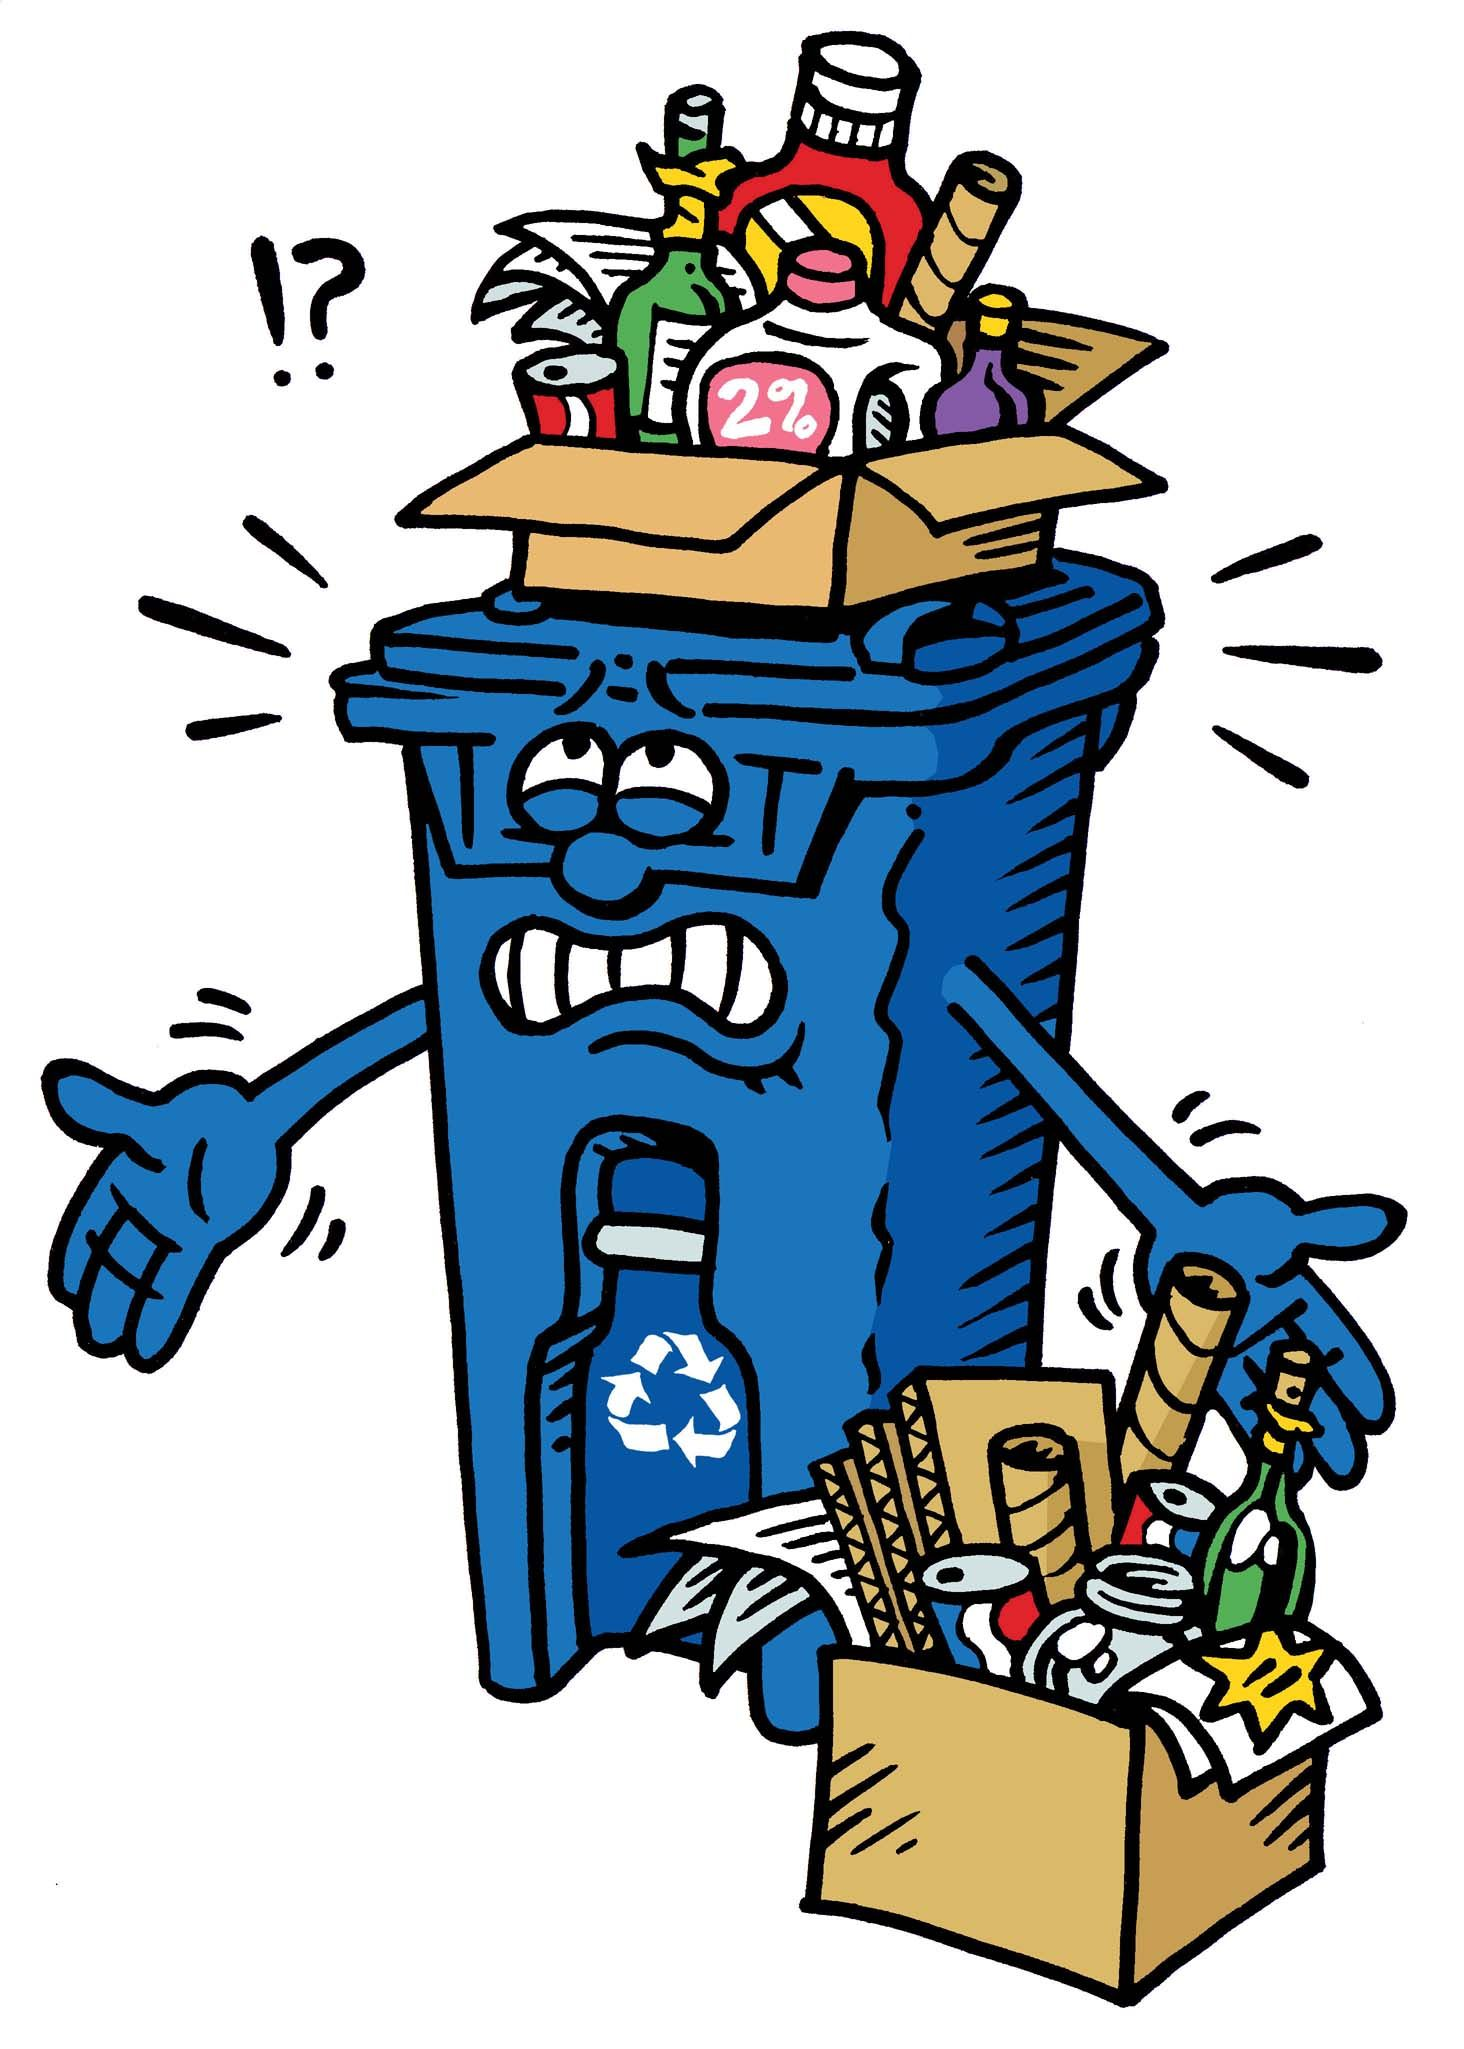 Waste disposal clipart image library stock What Can I Recycle? Waste Management | Eco Tips | Recycling ... image library stock